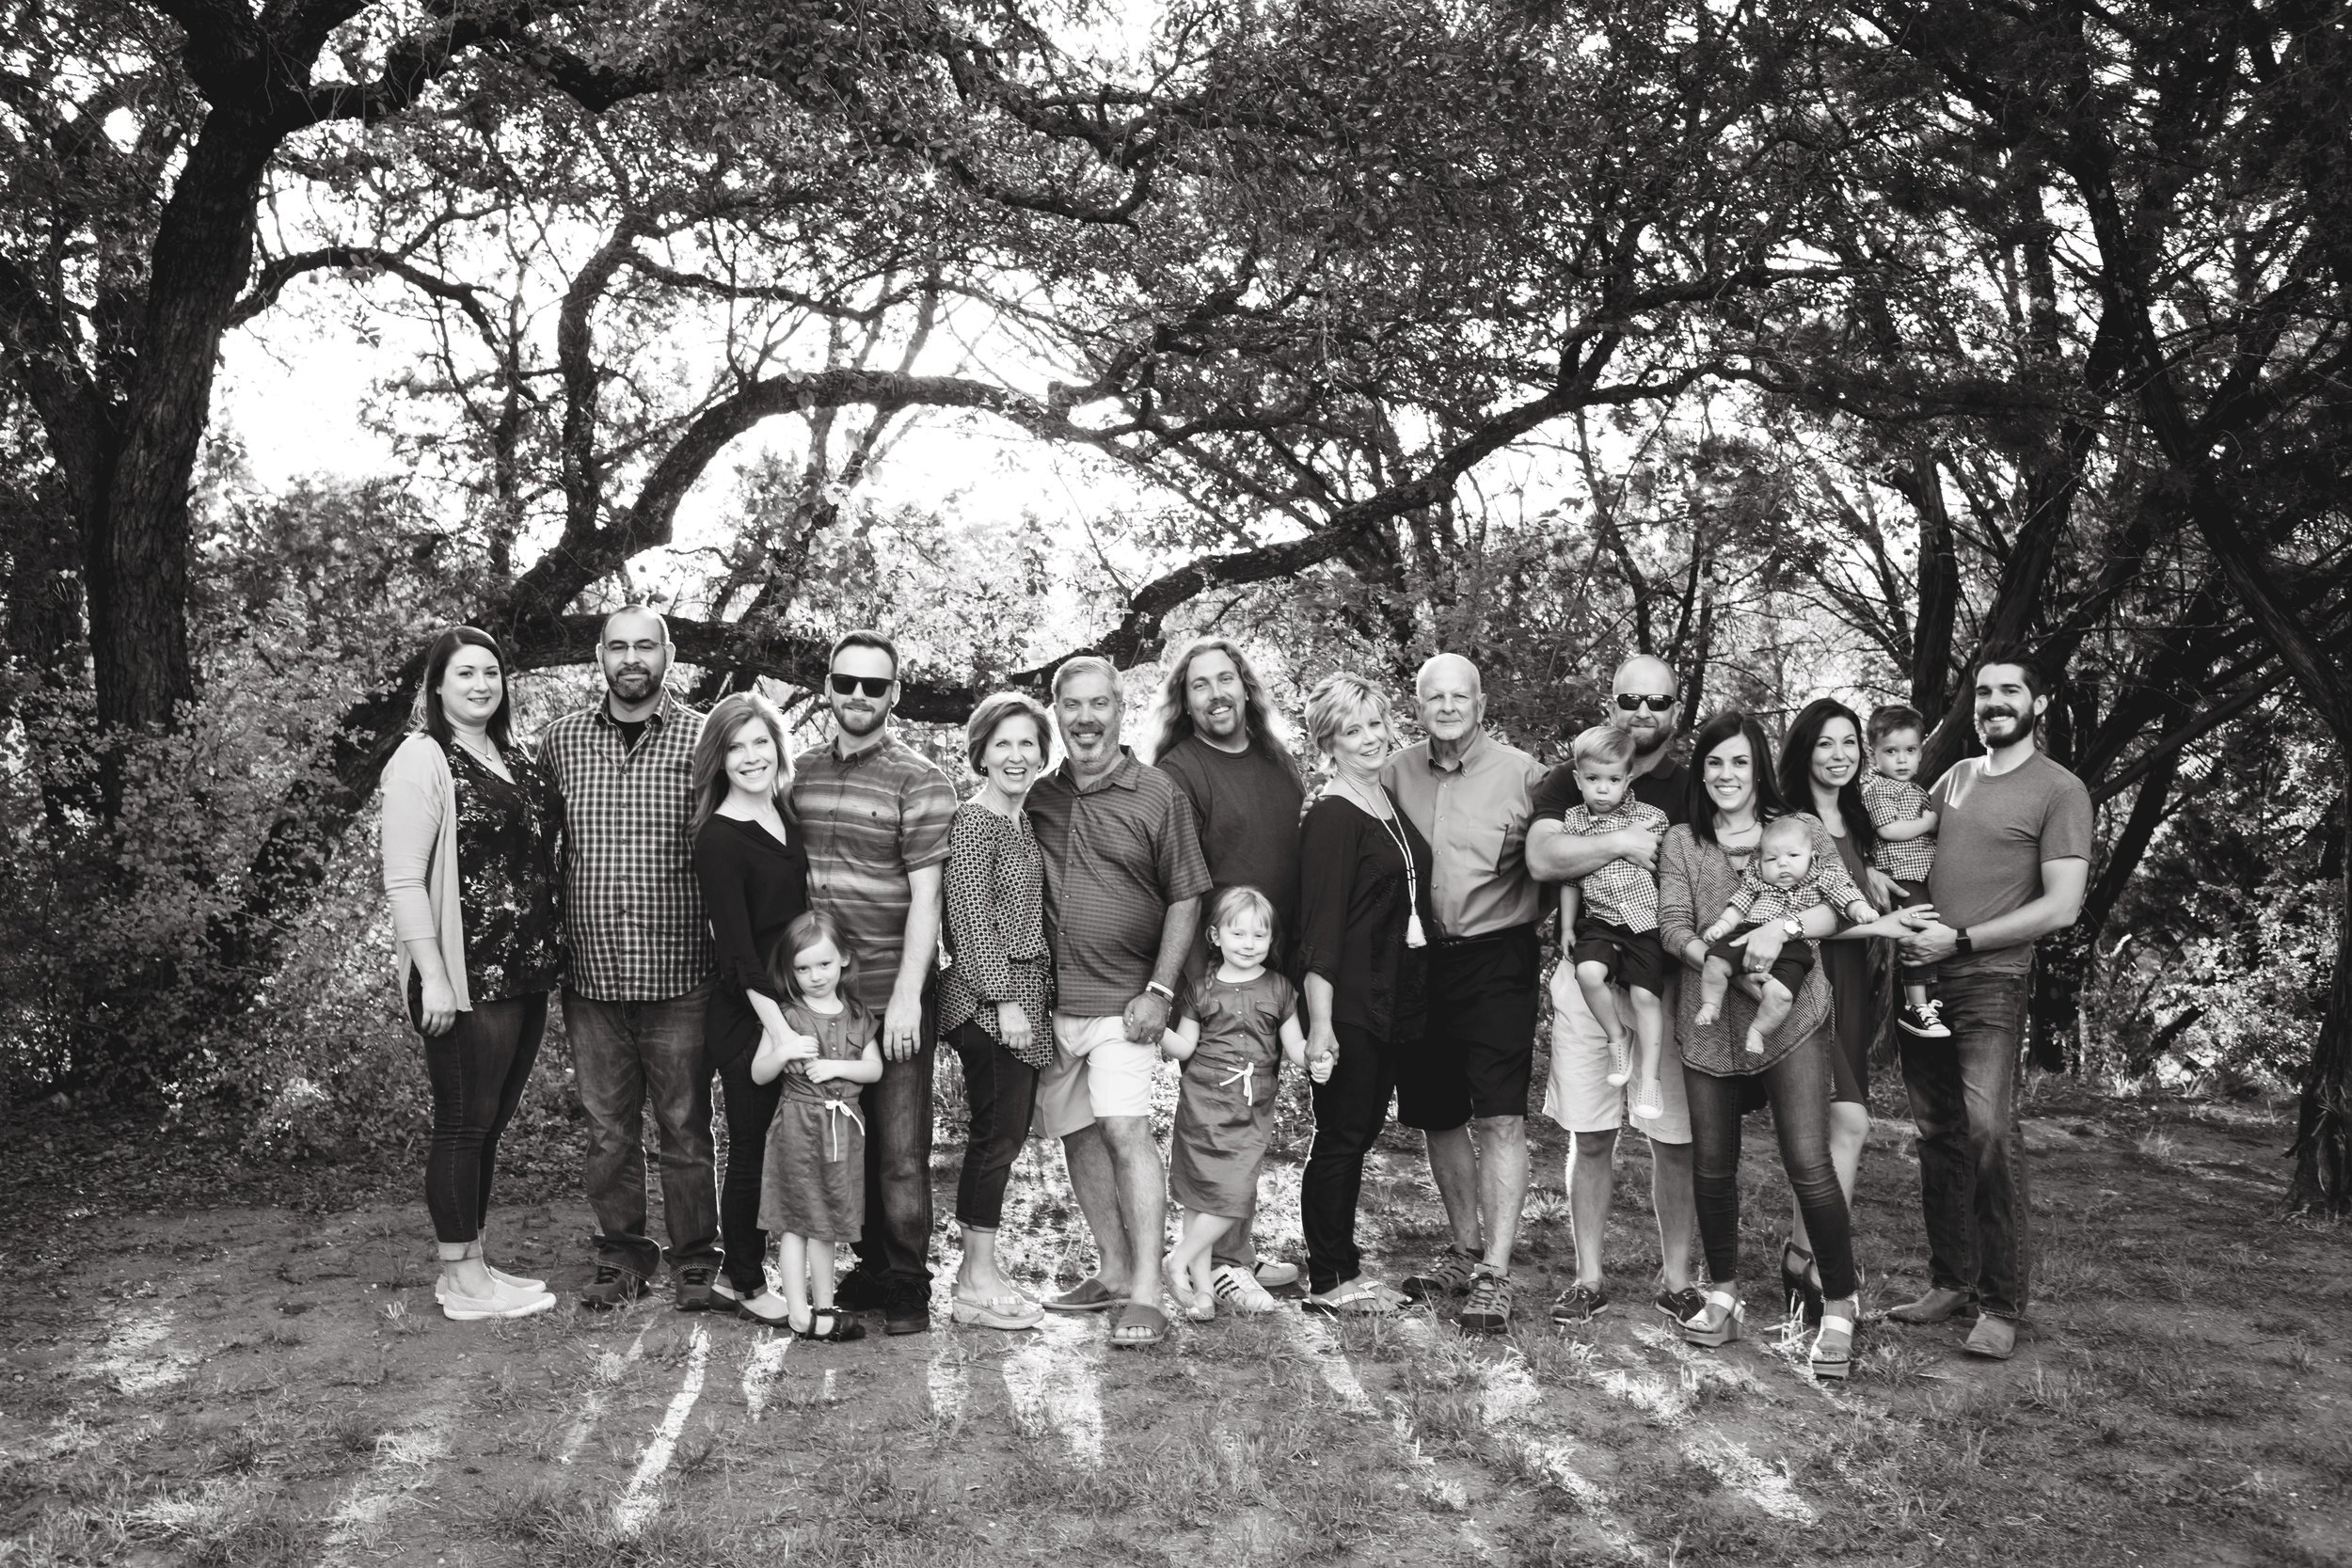 Marble_Falls_Stobaugh_Family_Photographer_Jenna_Petty_02.jpg